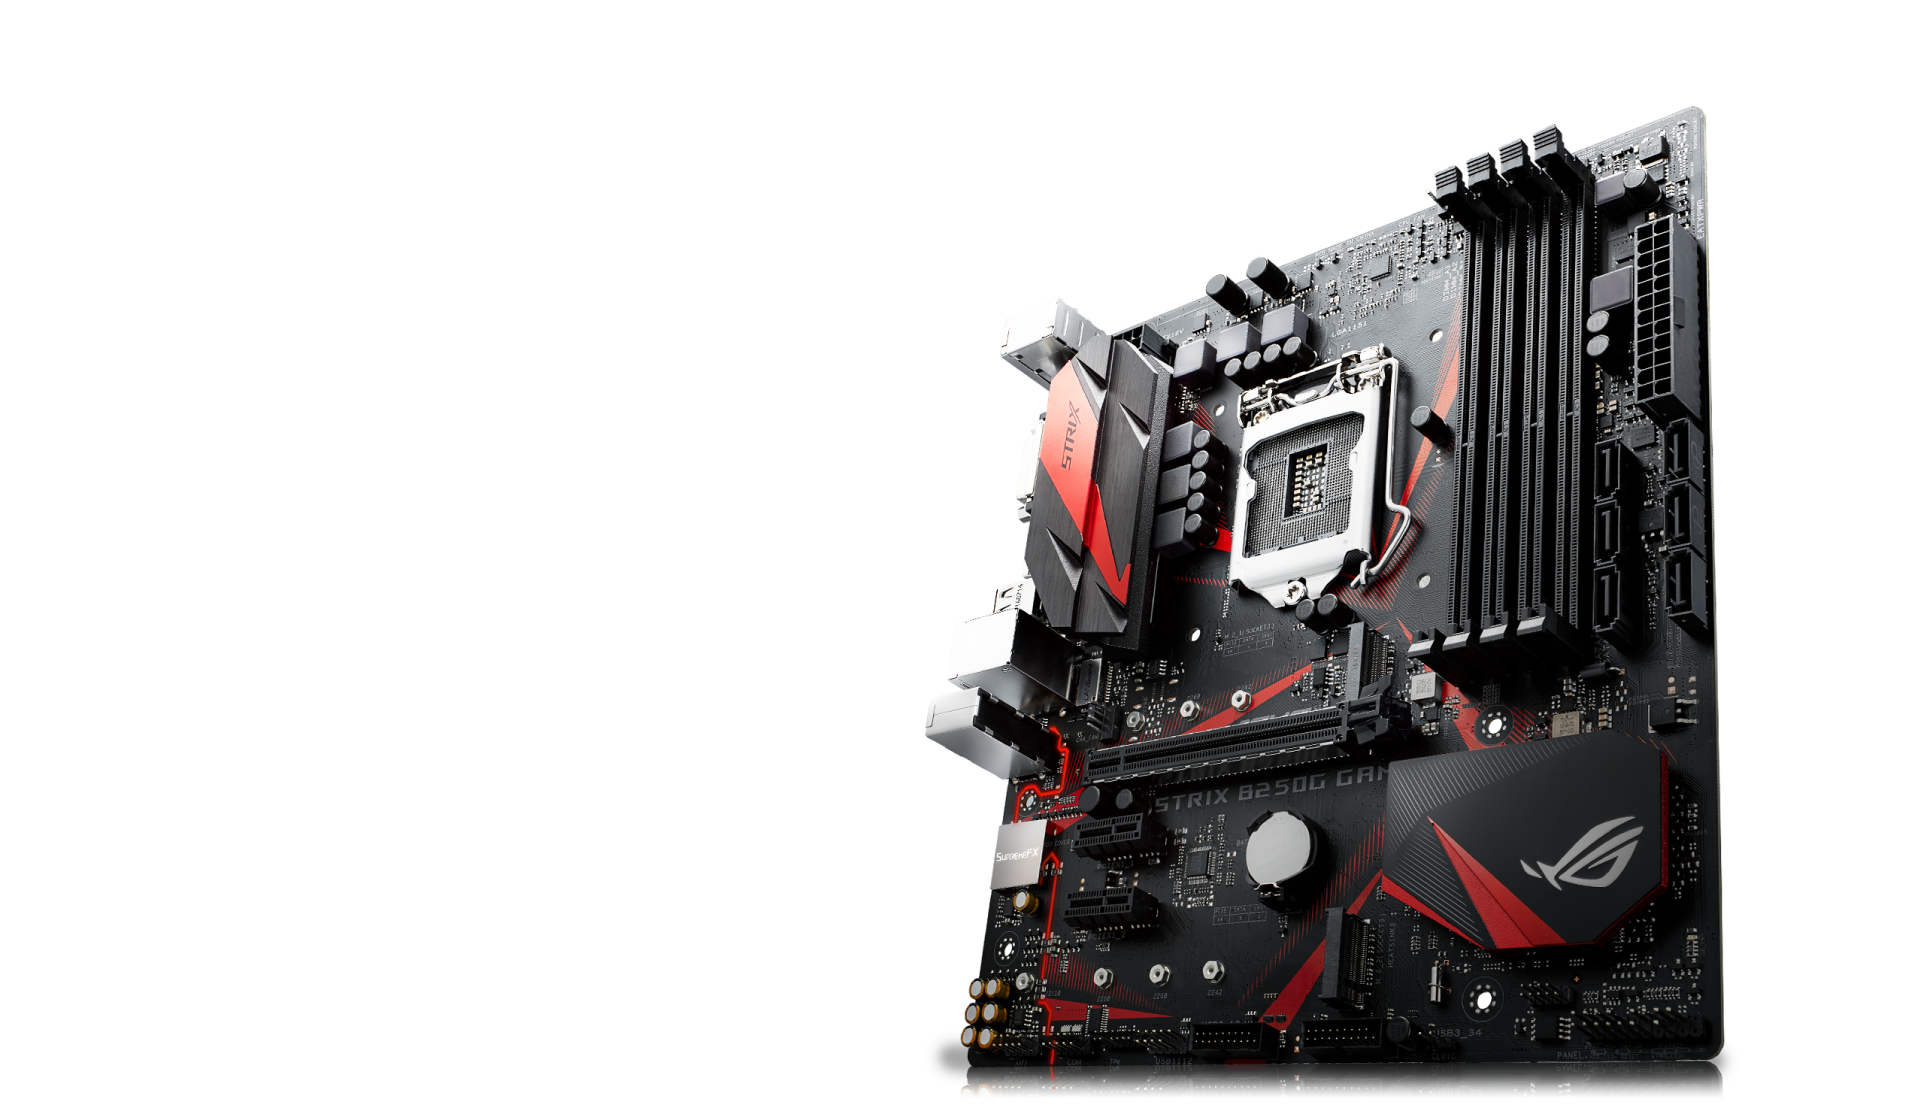 Rog Strix B250g Gaming Motherboards Asus Usa Hp Desktop Motherboard Wiring Diagram Charges Every Movement Of Game With Thrilling Energy And Equips You Epic Speed Agility Join The Republic